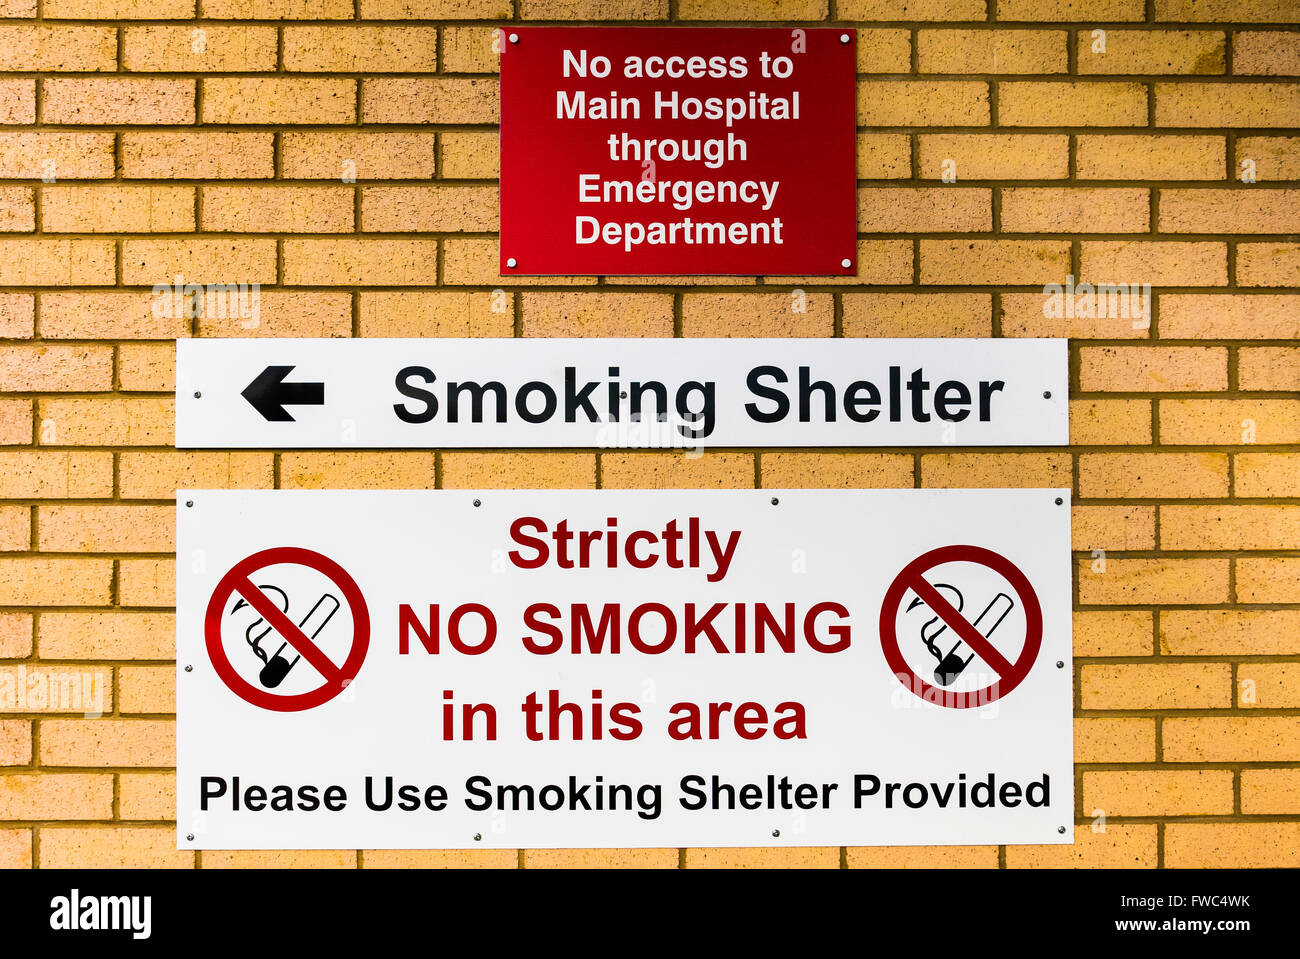 Signs at the entrance of a hospital emergency department warning signs at the entrance of a hospital emergency department warning tha no access to the main hospital is possible and smoking is sciox Image collections